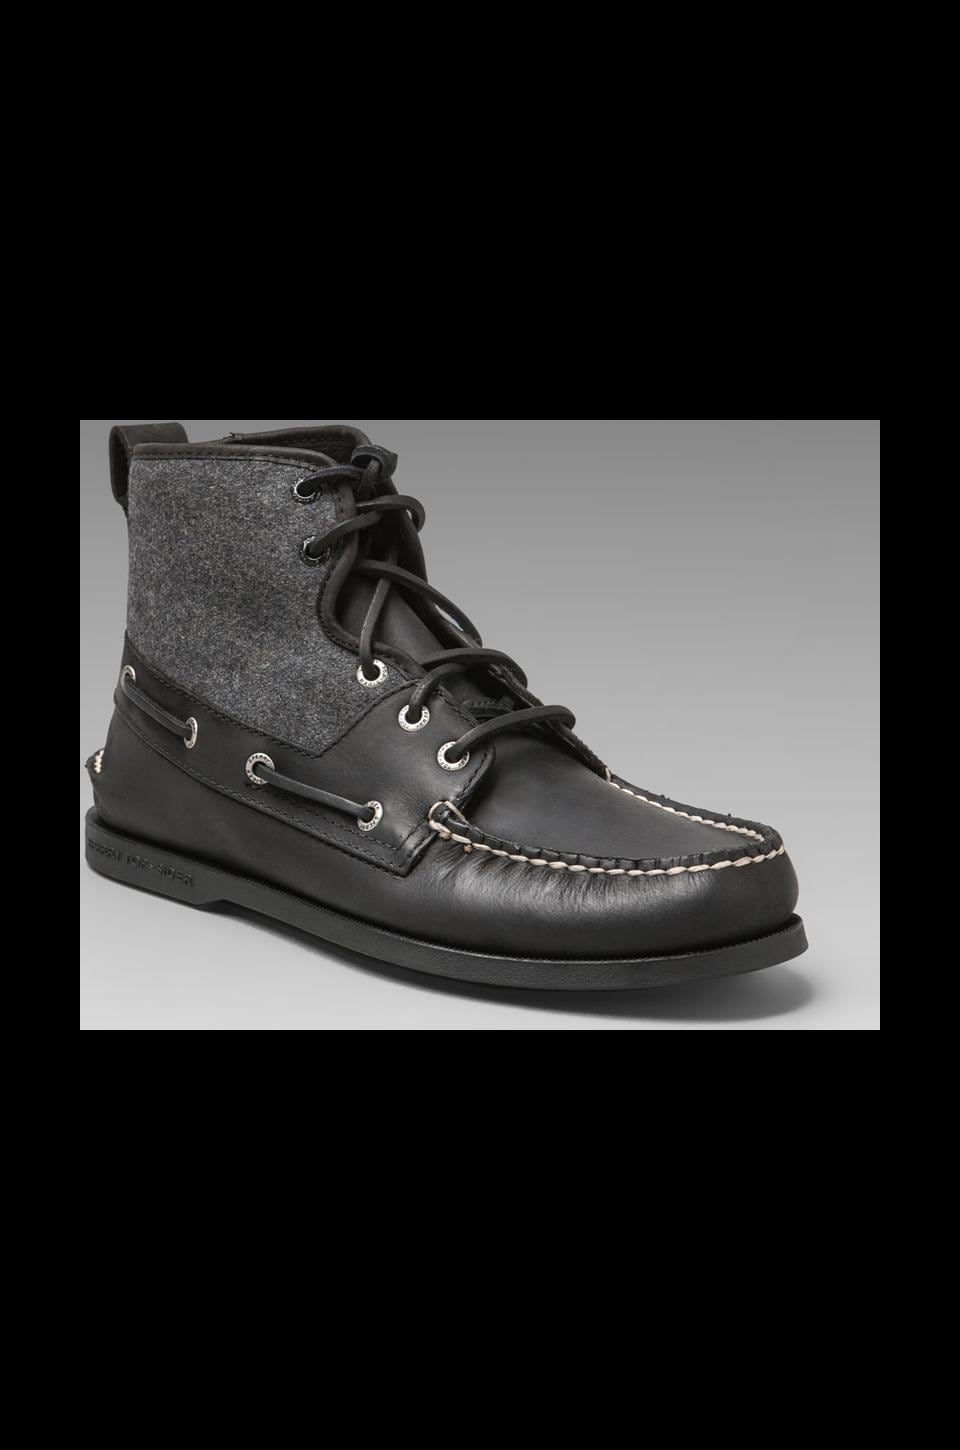 Sperry Top-Sider A/O Sport Boot in Black/Grey Wool